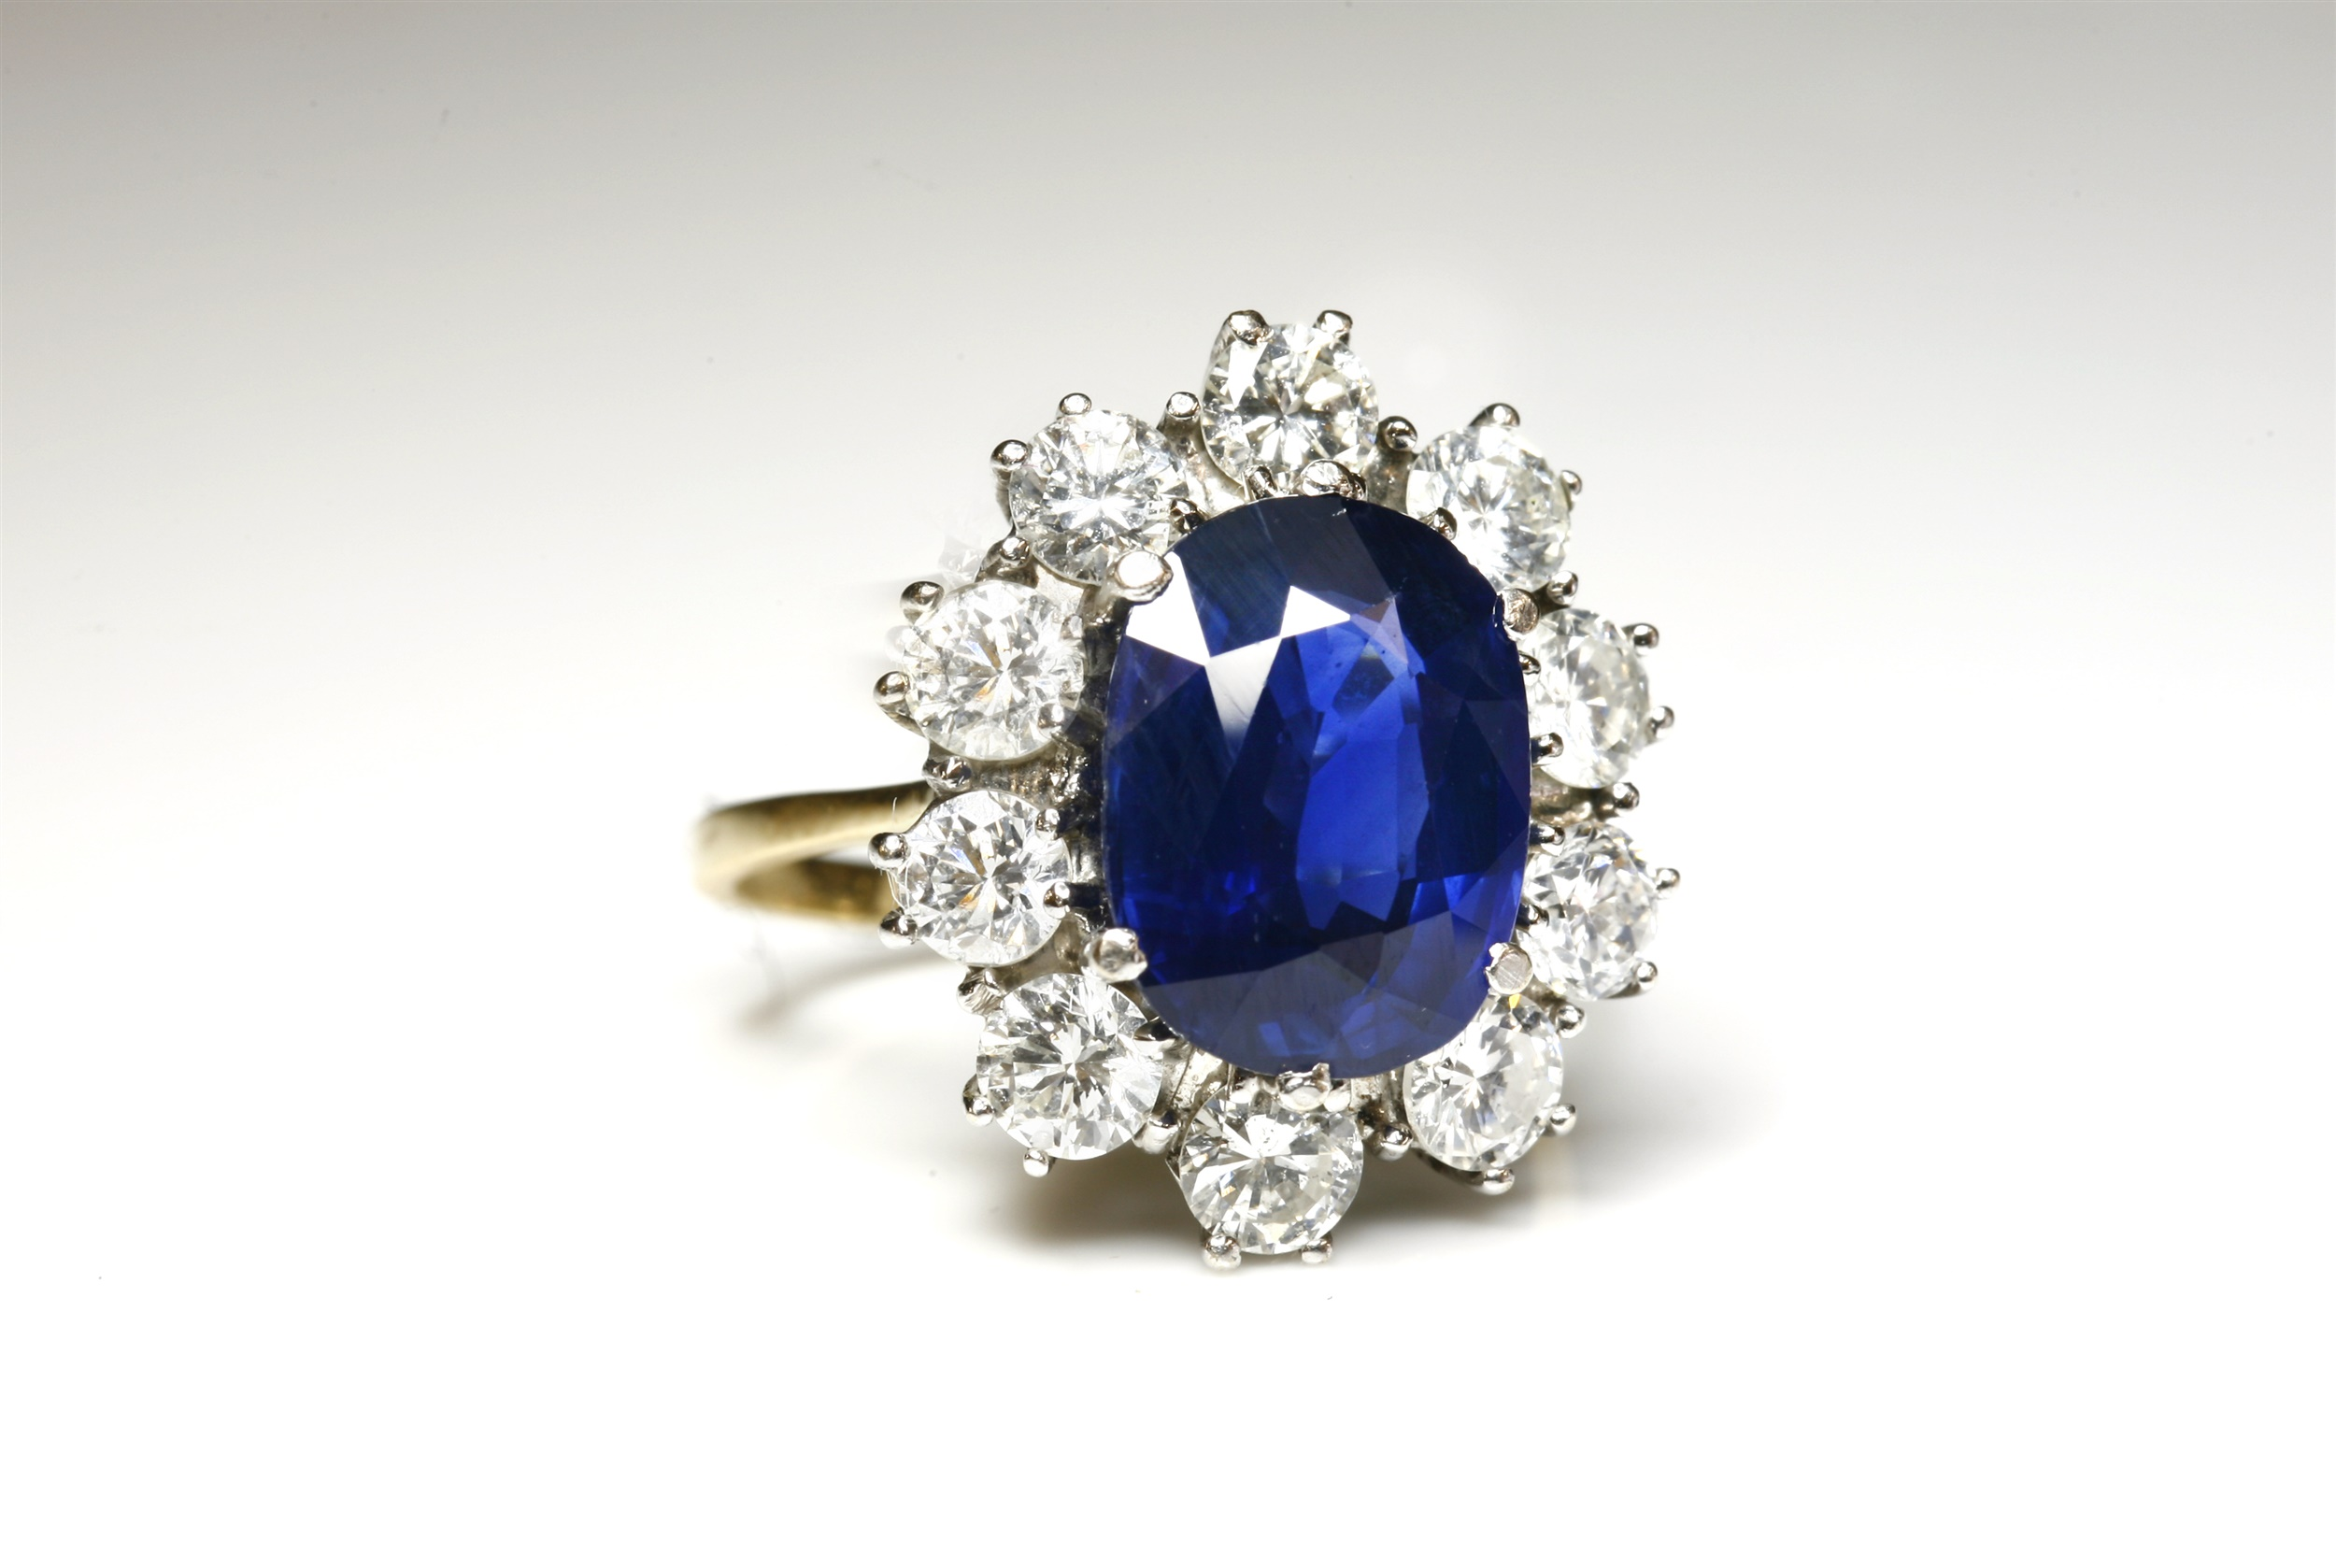 An 18ct gold, sapphire and diamond oval cluster ring